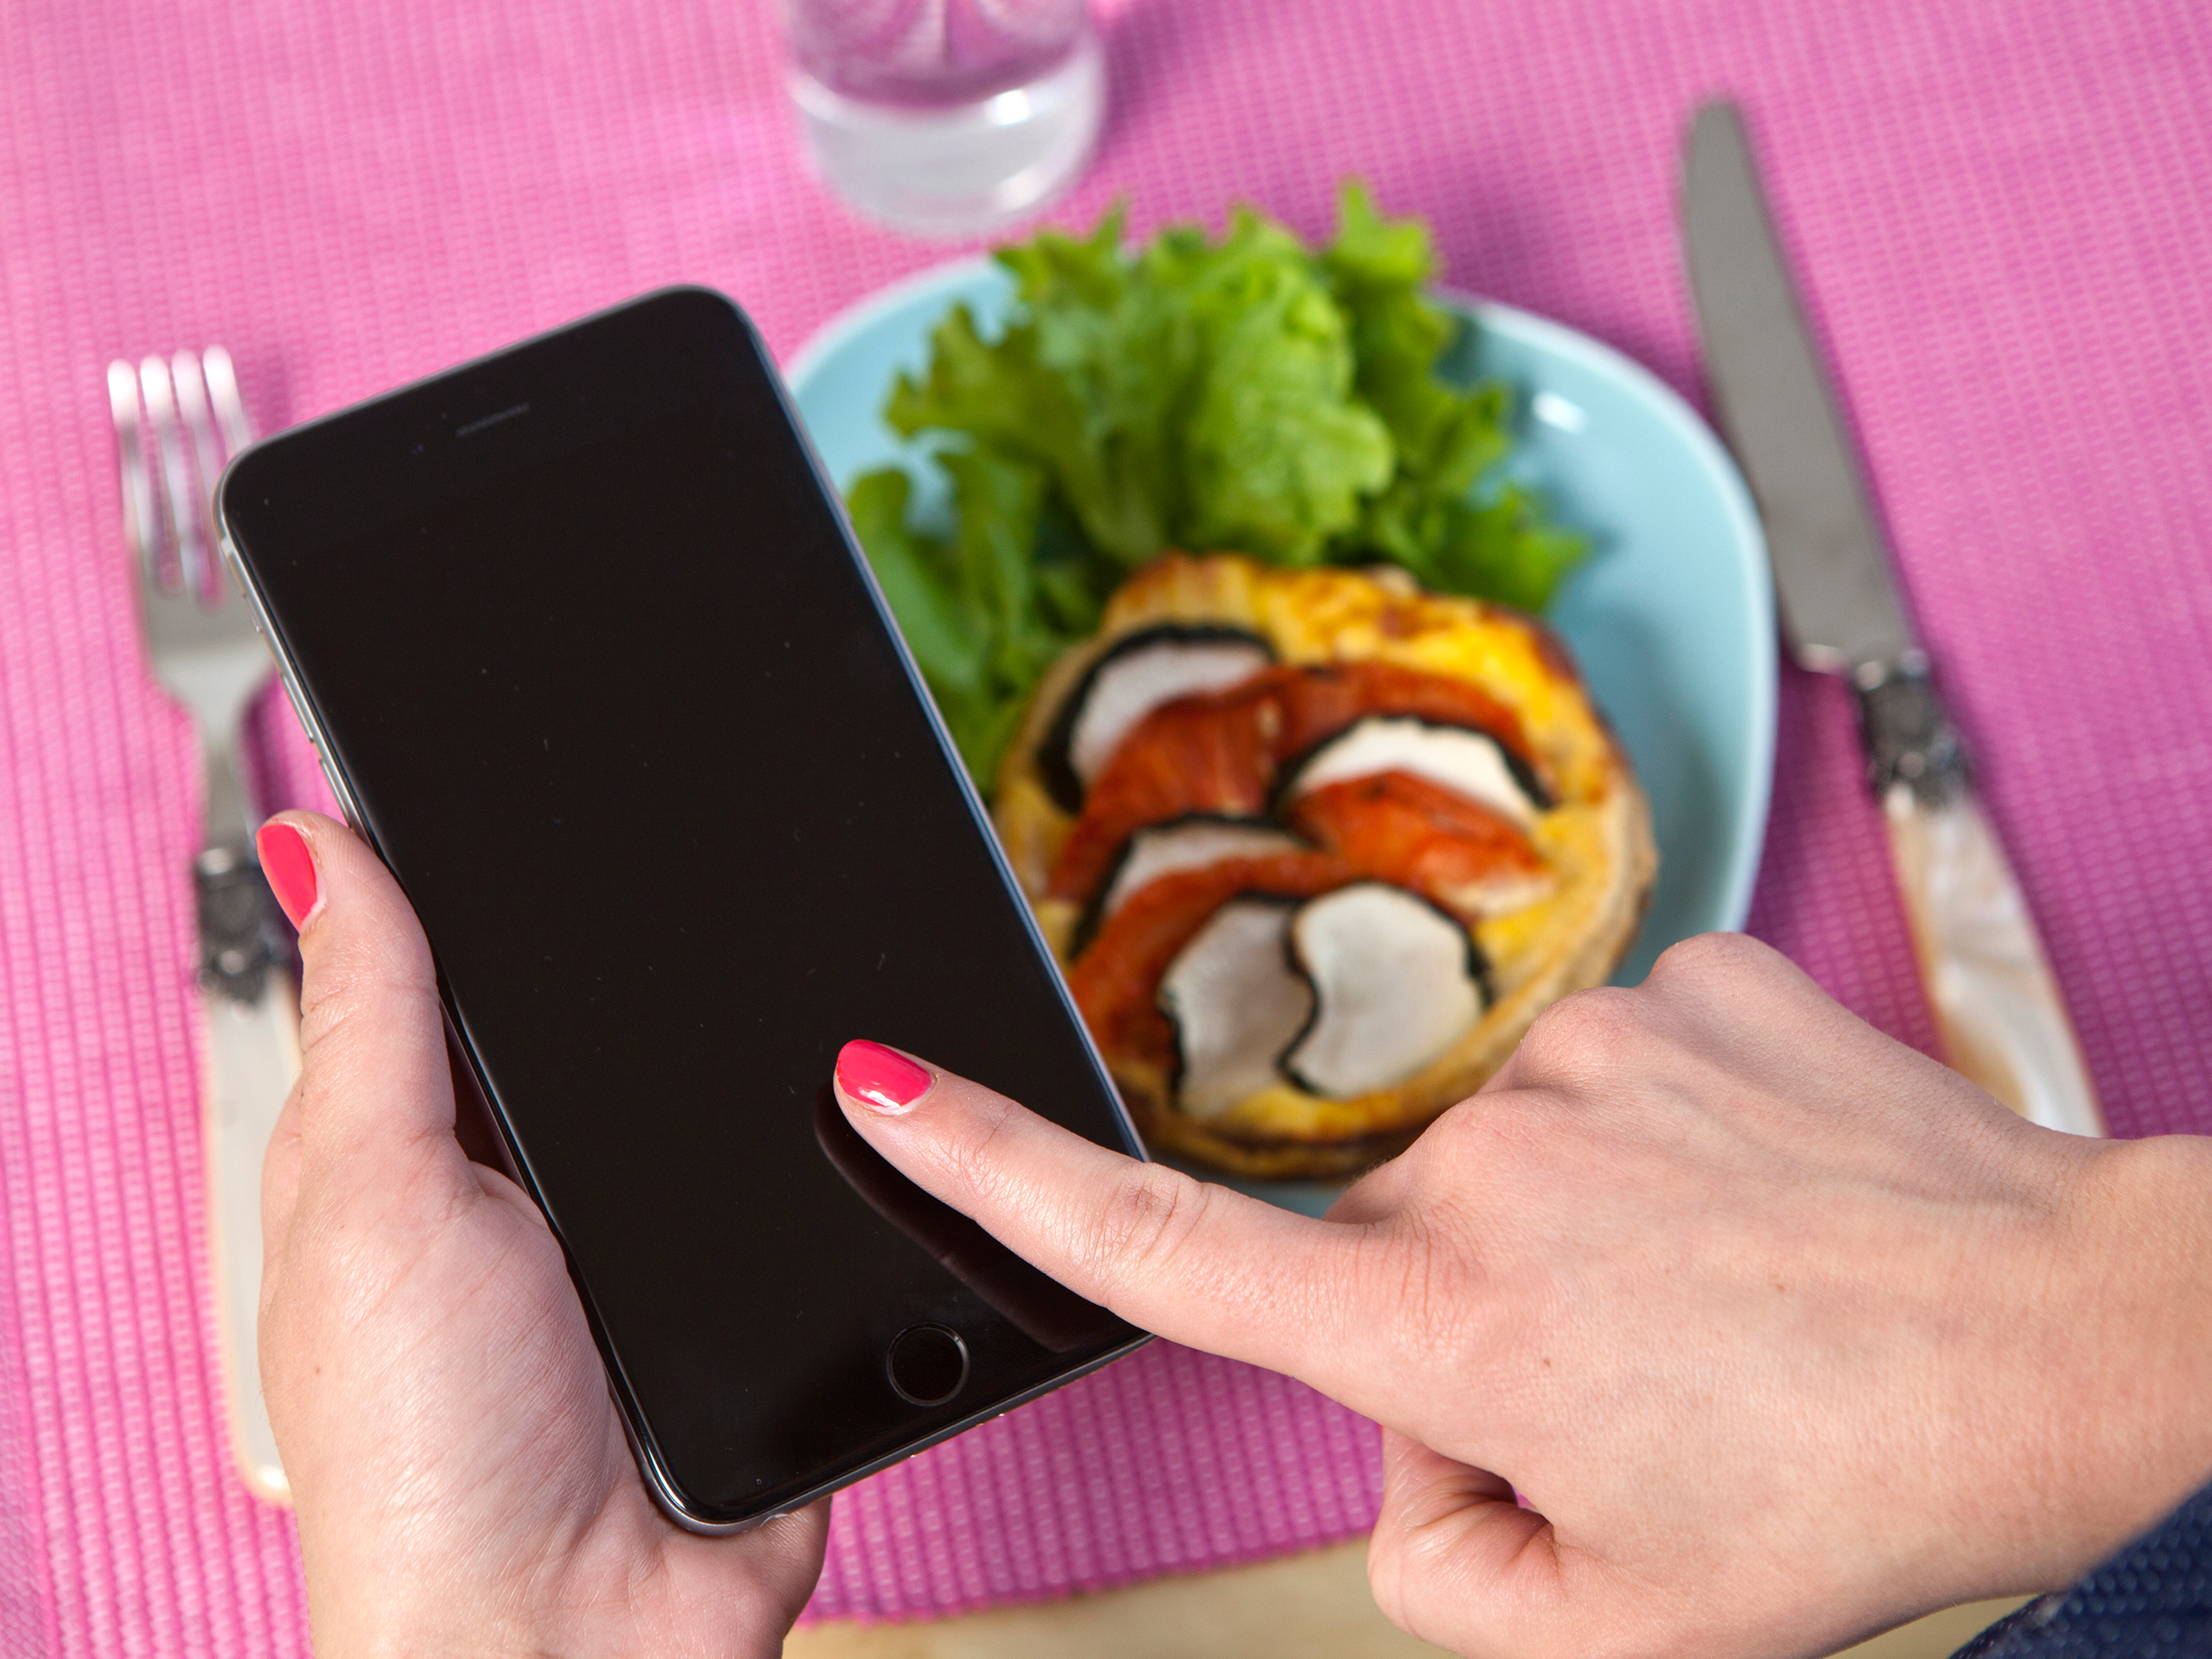 Noom Is the Diet Taking Over Instagram, but Does It Work? - Cooking